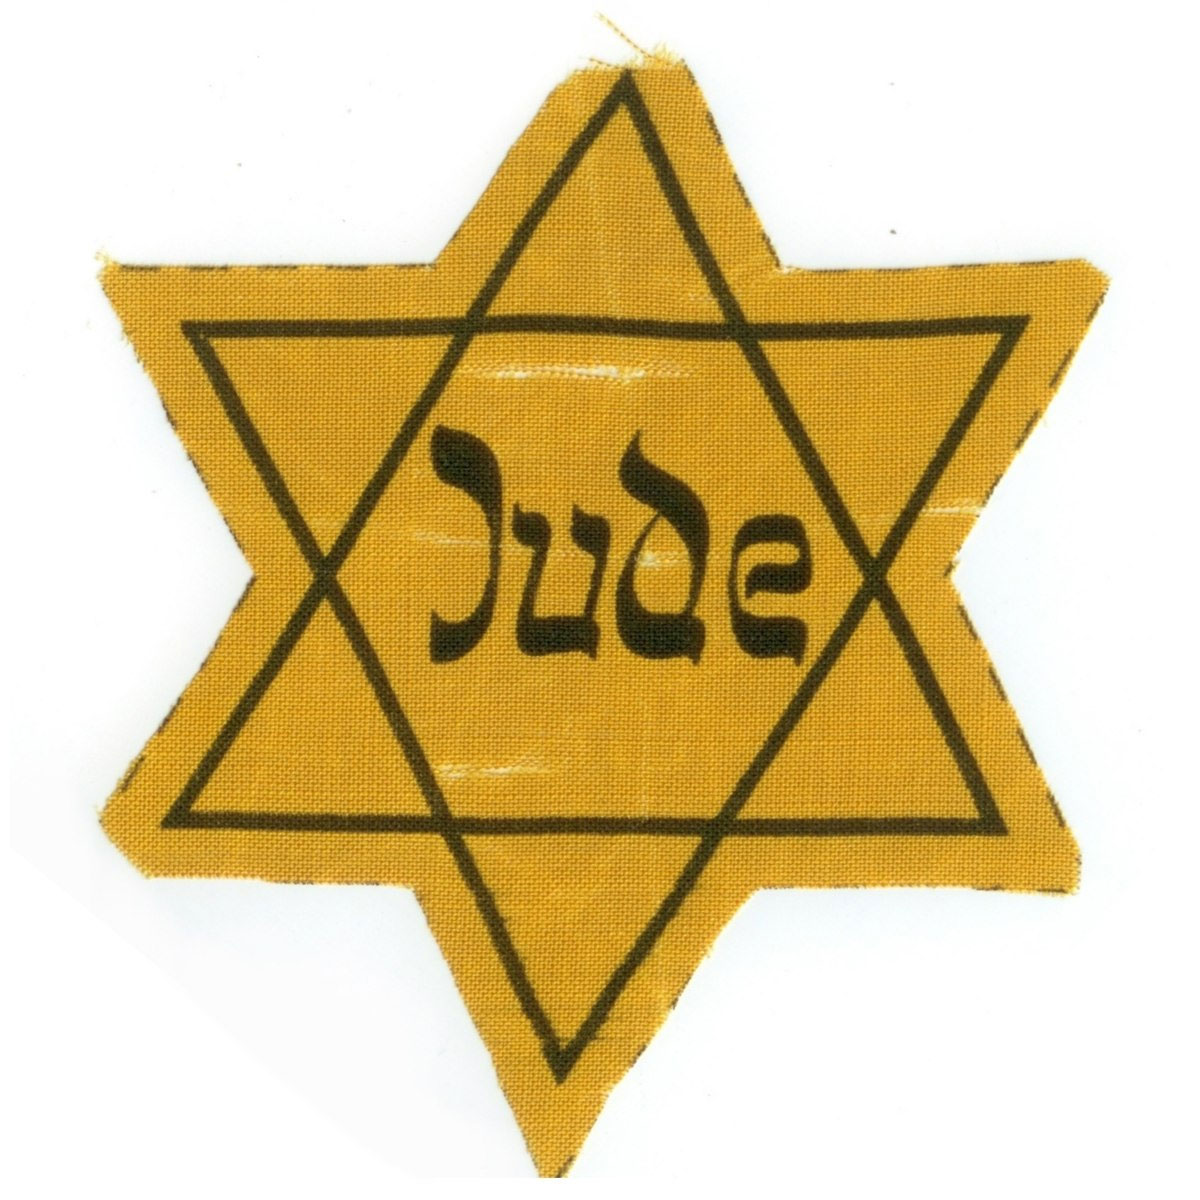 This Star of David printed on yellow fabric with the German word Jude (Jew) was found in Bielsko, Silesia, Poland, which was incorporated into the German Third Reich during World War II.